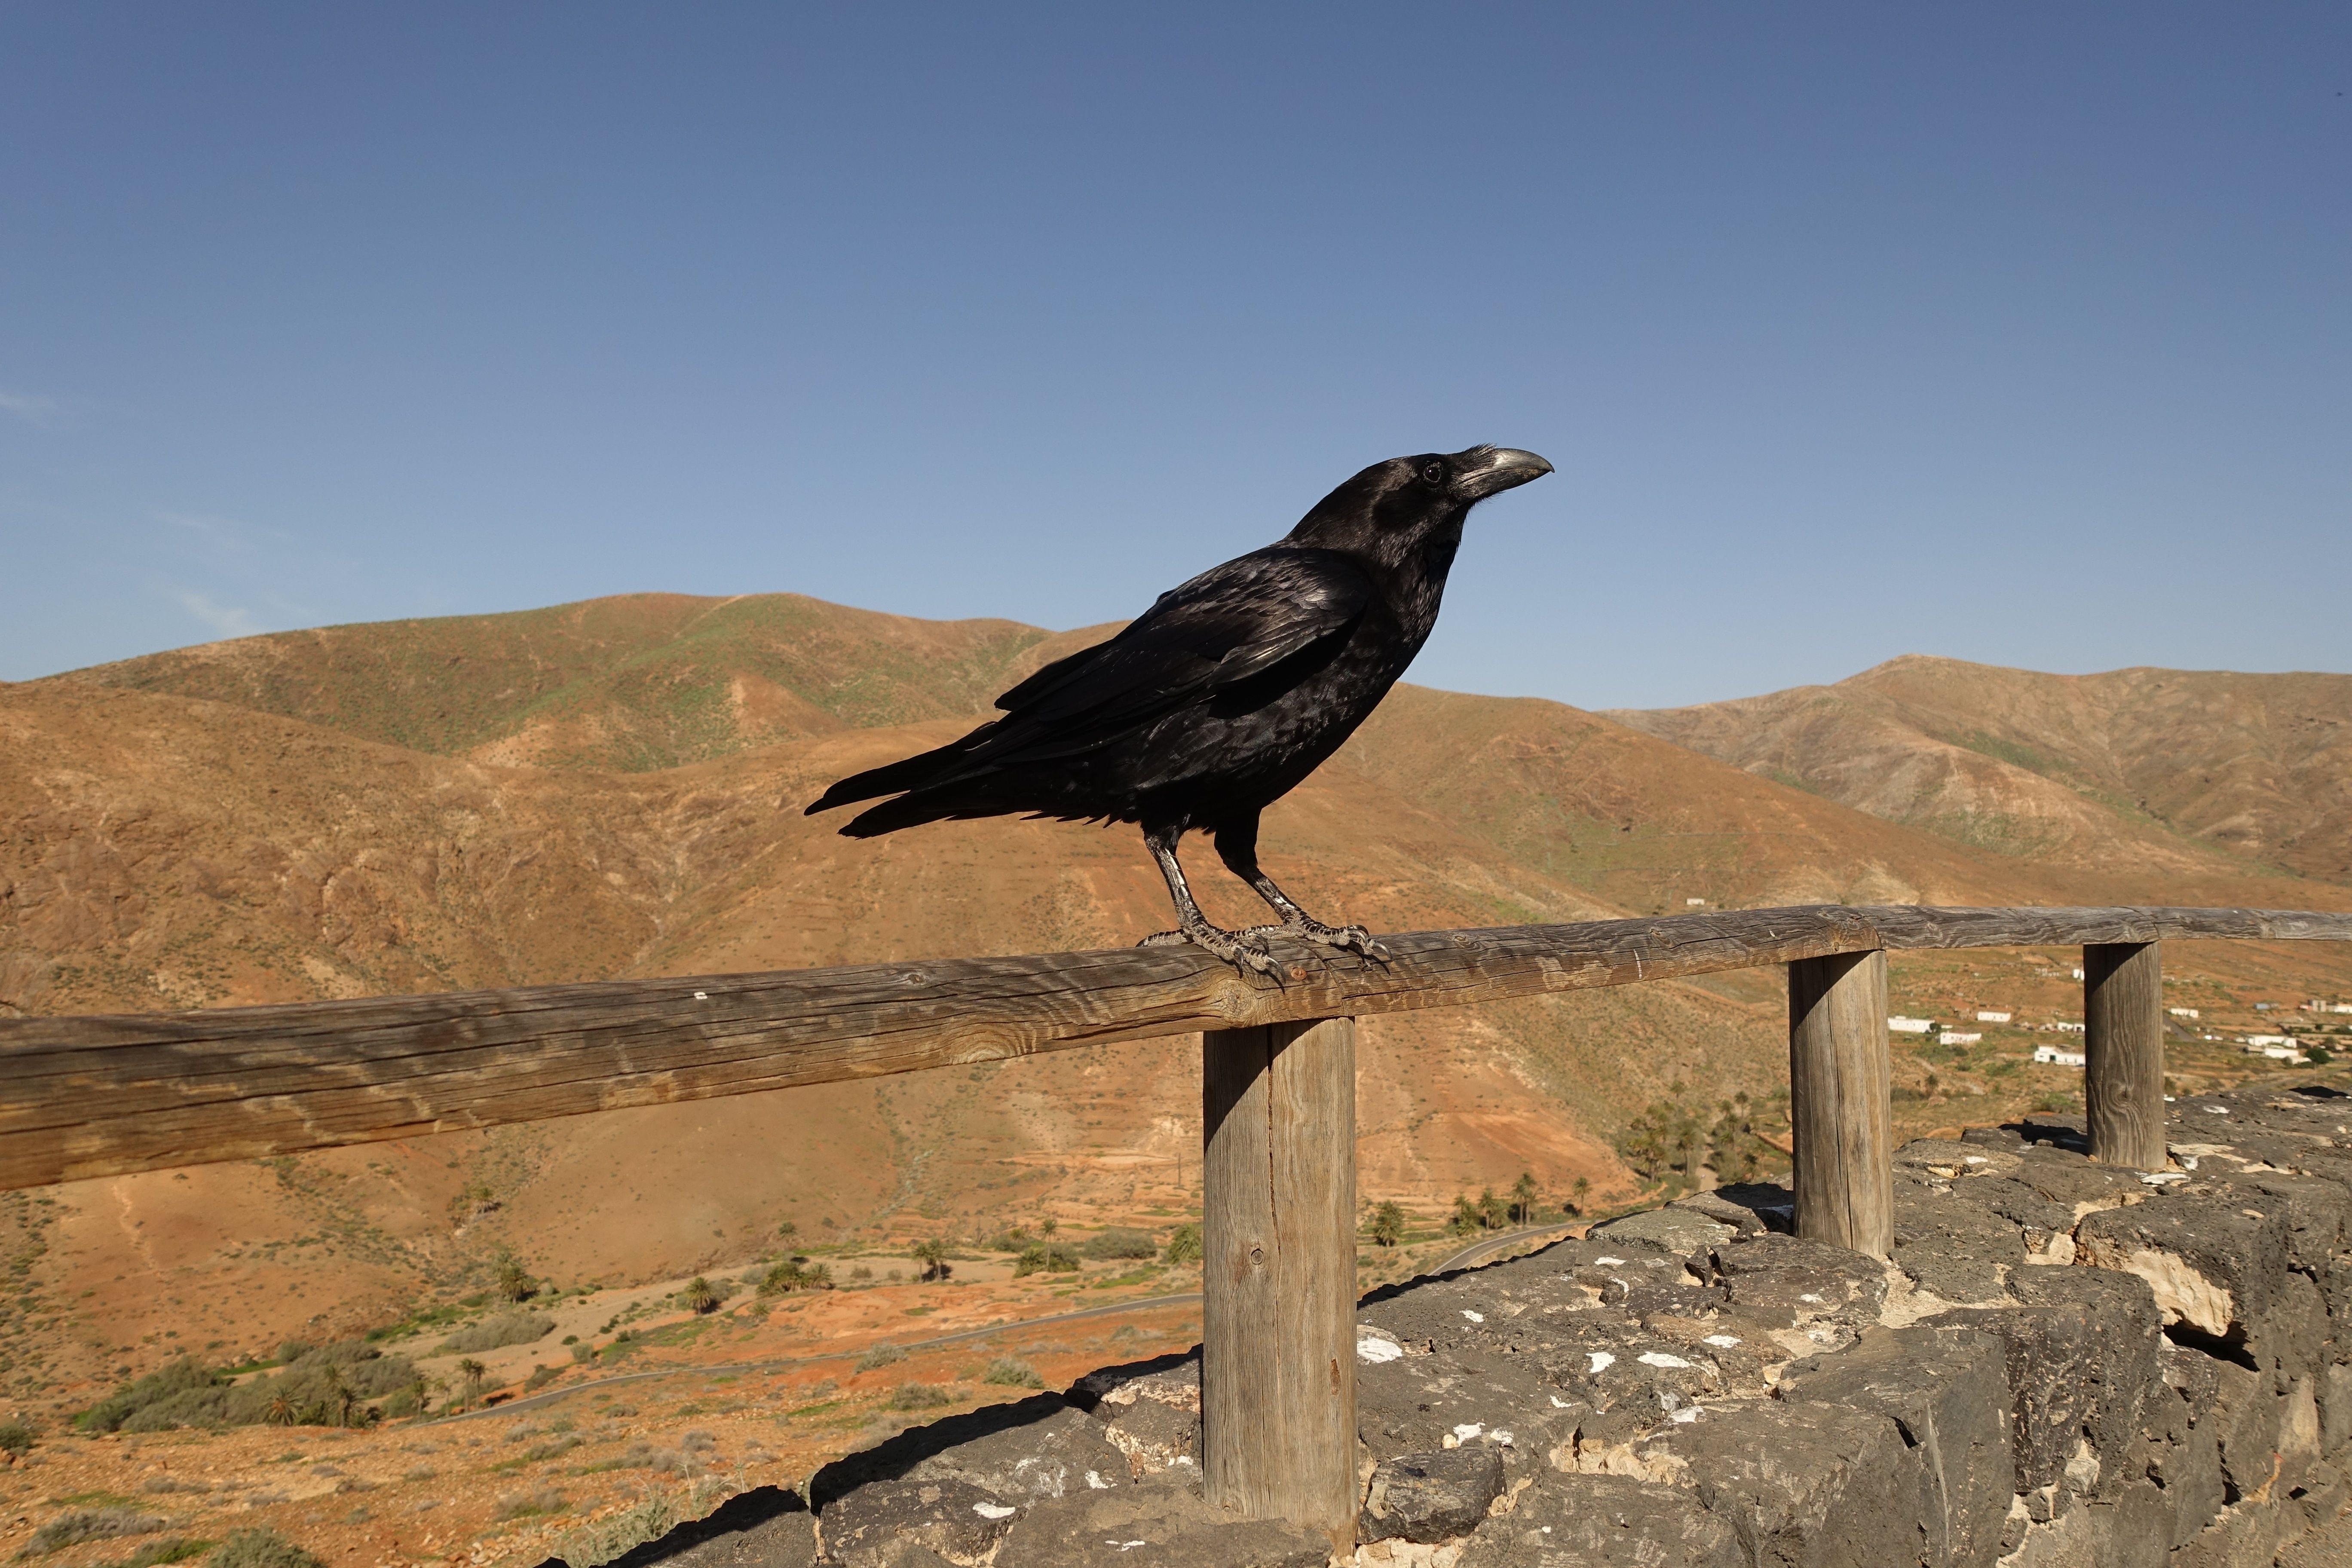 Common raven perched on fence rail